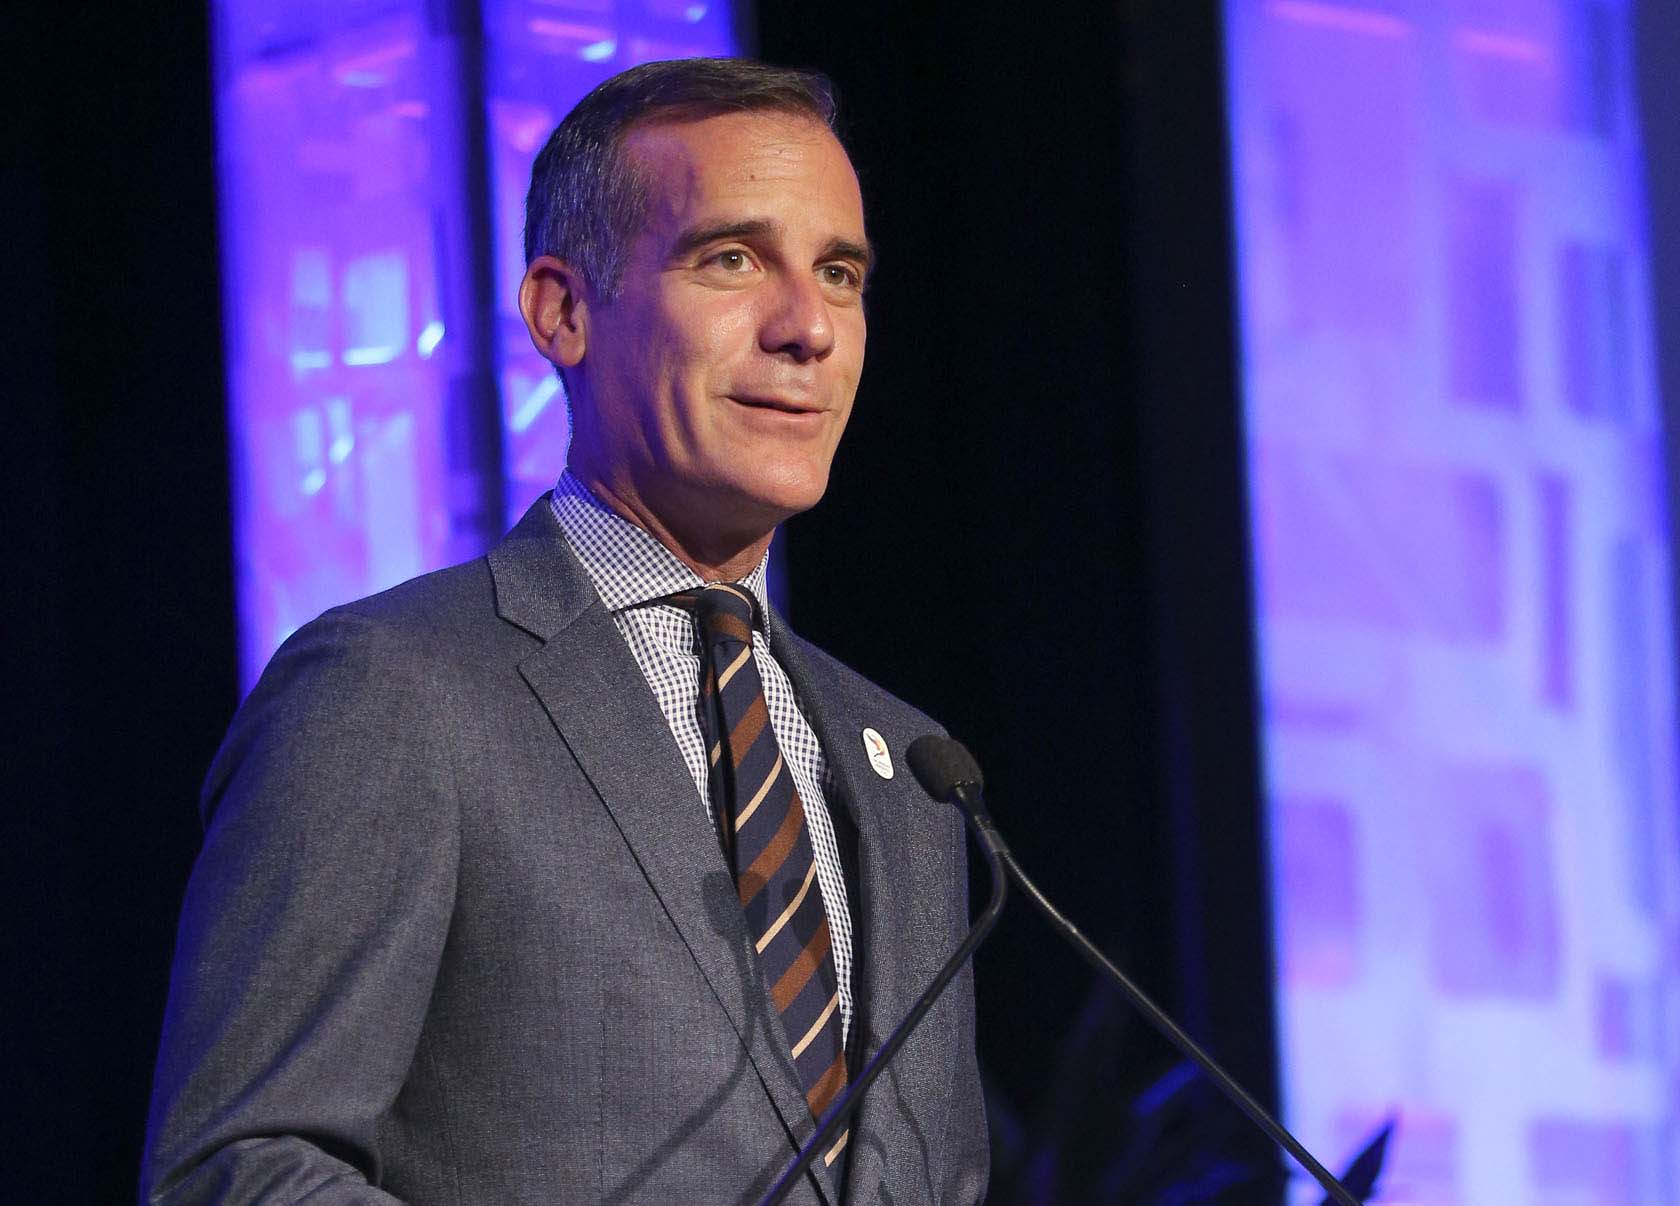 Foreign Direct Investment in LA:  City of LA Mayor Eric Garcetti Explains the Value Proposition